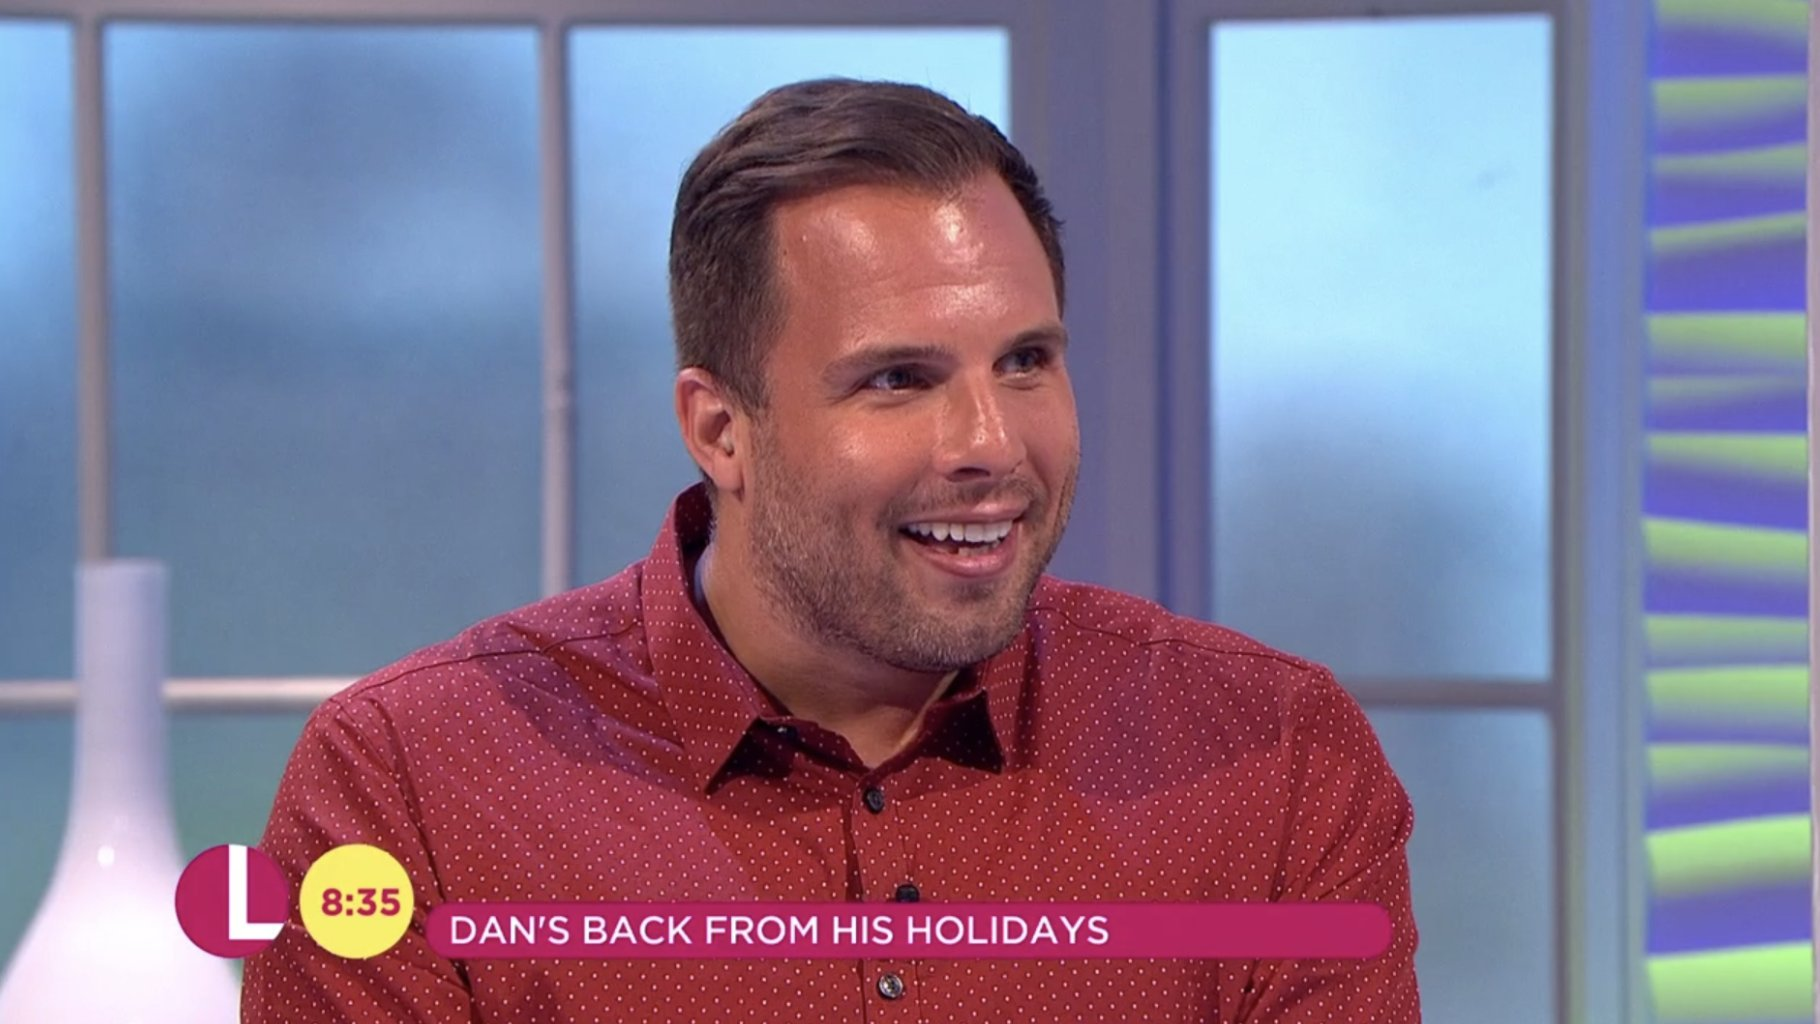 RT @ITVLorraine: .@danwootton's back from his holidays! And LOOK at that tan! 😎 https://t.co/tjHzk1LsSc